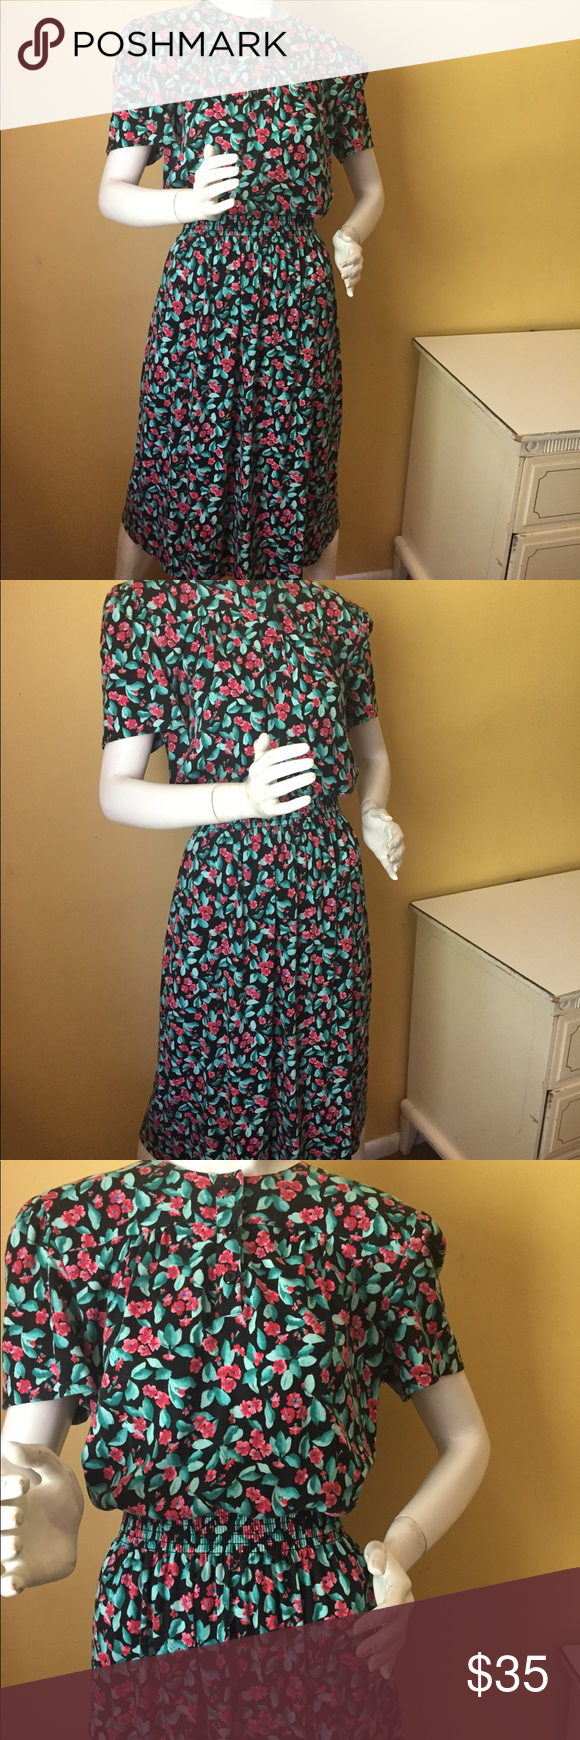 """Vintage Virgo11 floral dress Vintage Virgo11 floral dress. Union label. Fabric could be a cotton blend. Washing instructions on tag but doesn't state material. Length 48"""", waist 12"""" resting, but can stretch to 40"""", bust 42"""". Vintage Dresses"""